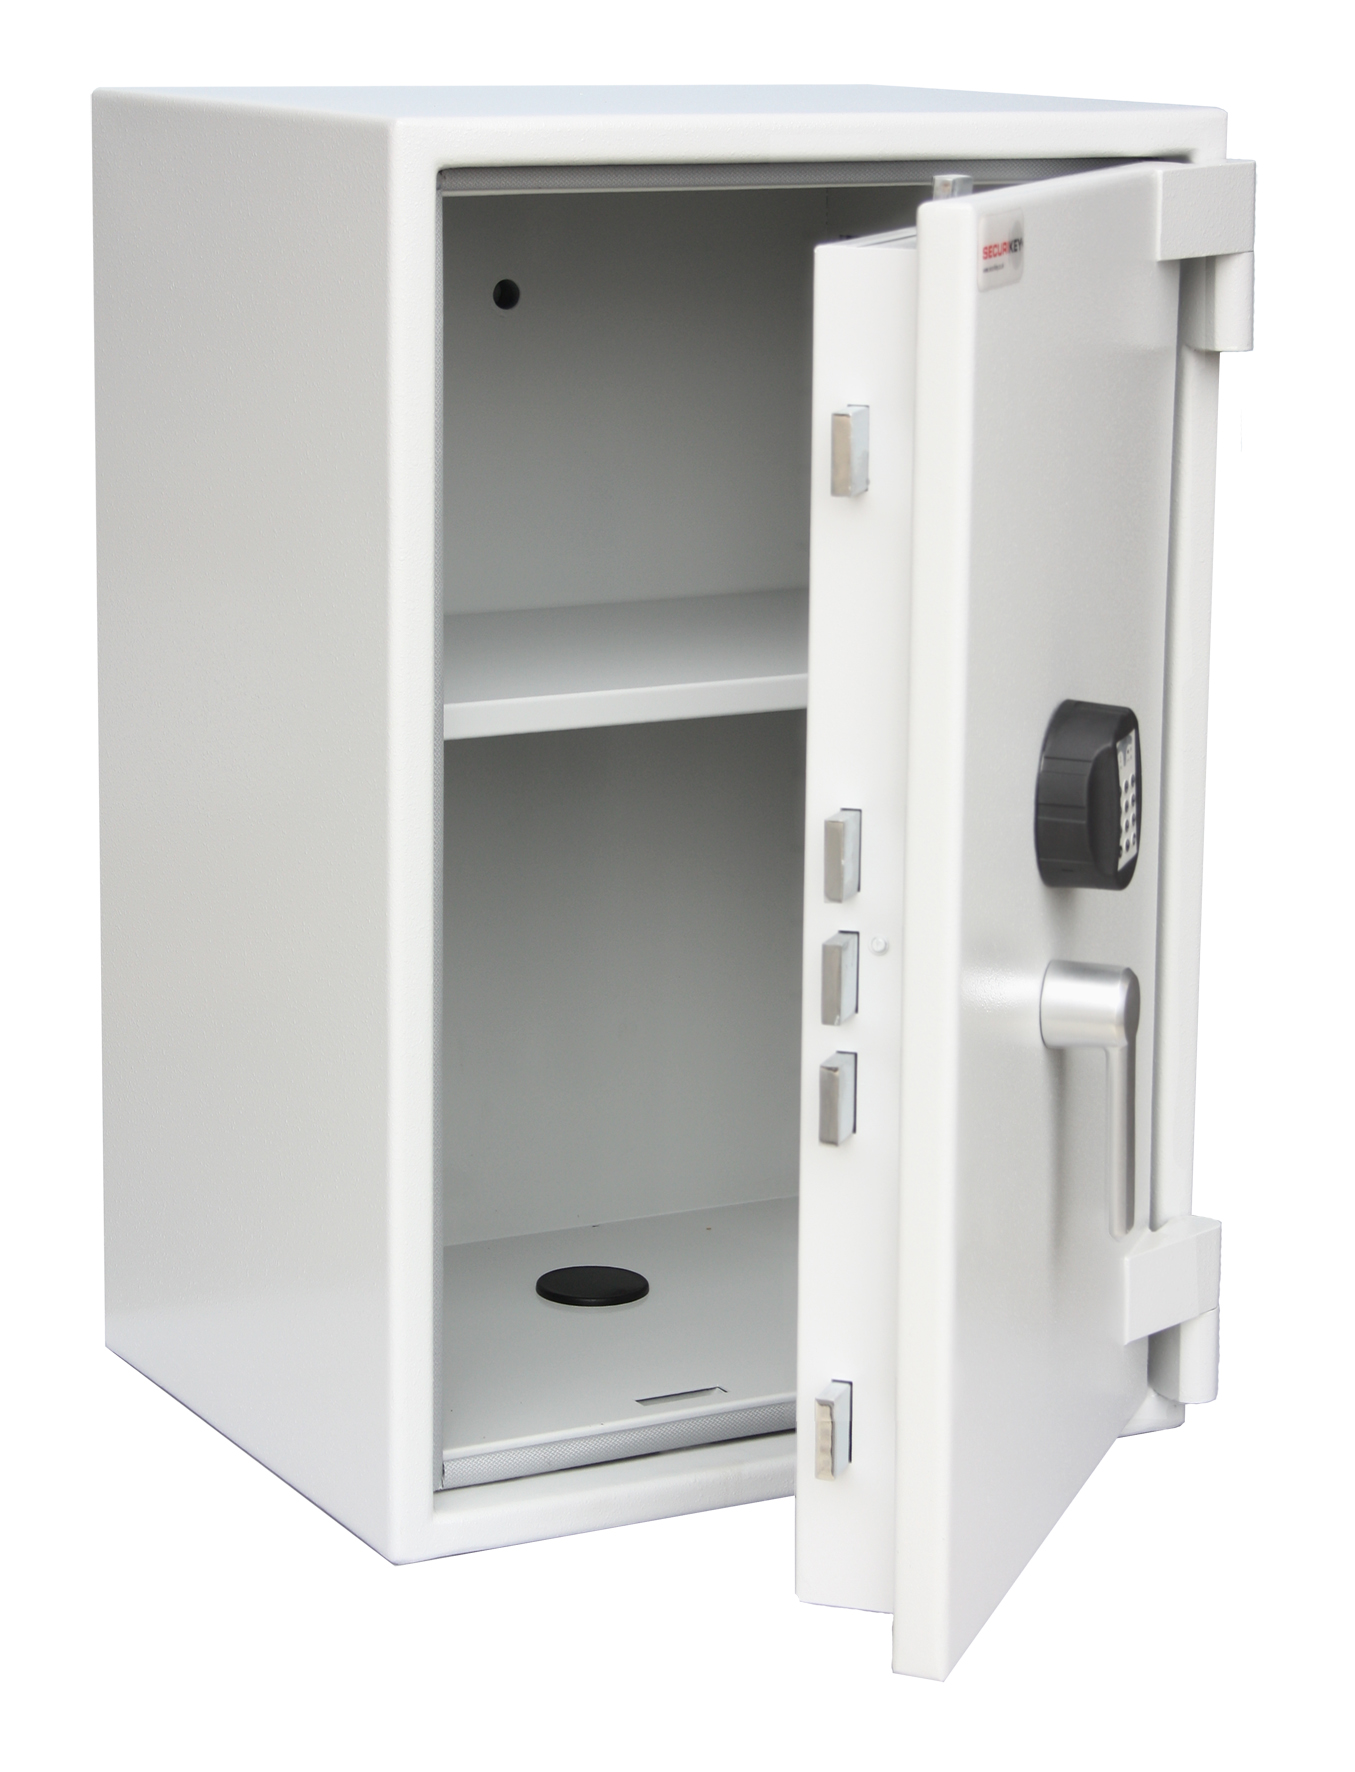 SECURIKEY  Euro Grade 0 095E Freestanding Safe Electronic Lock